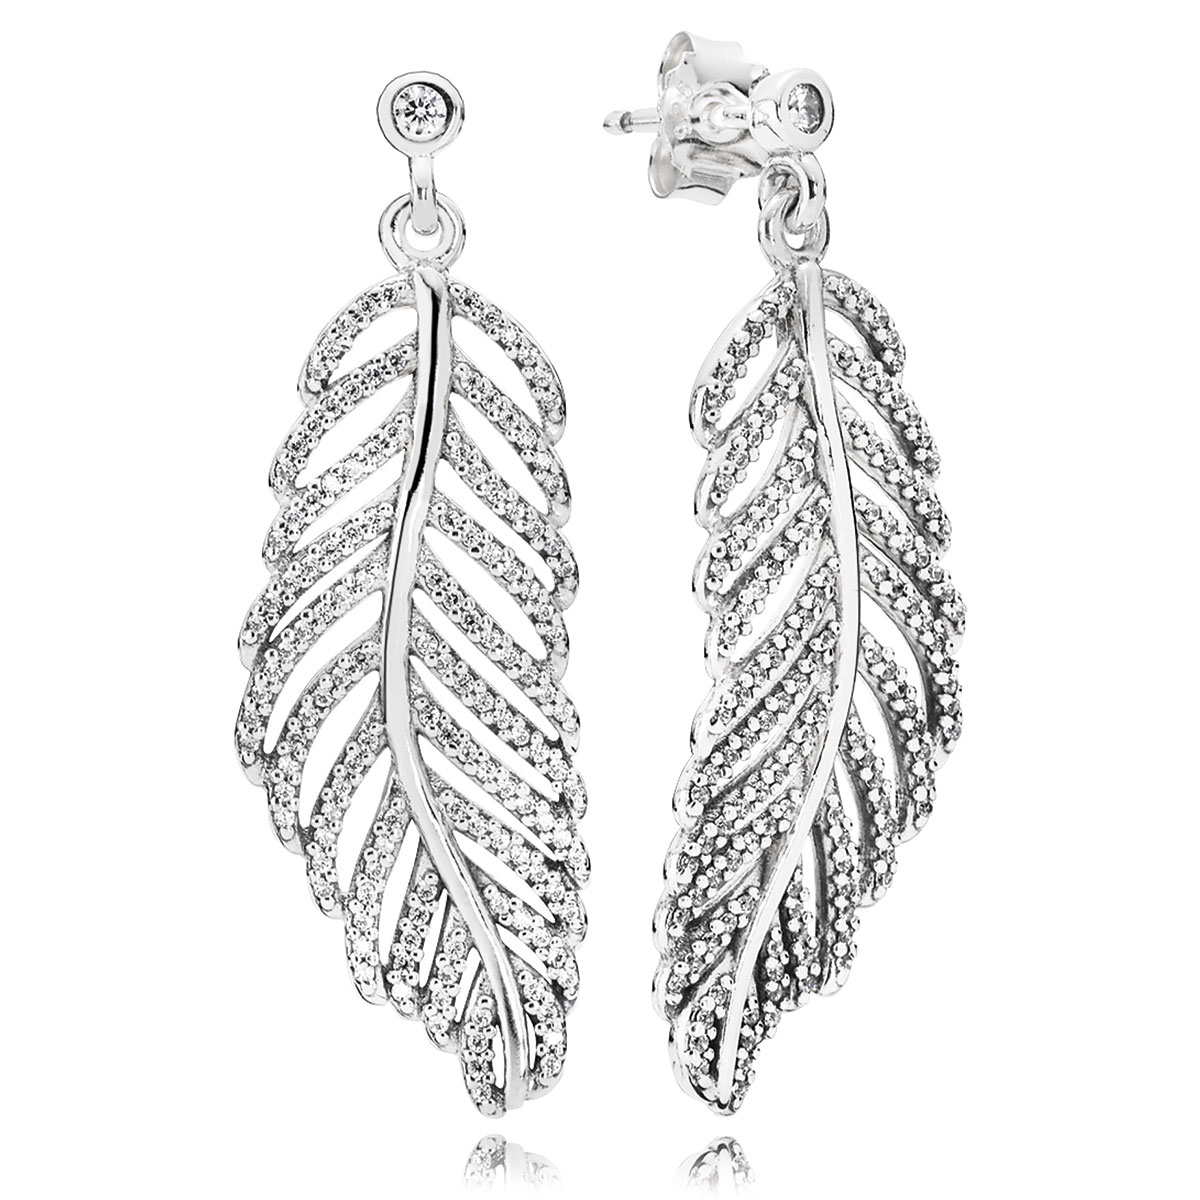 804-420-PANDORA Light as a Feather with Clear CZ Dangle Earrings